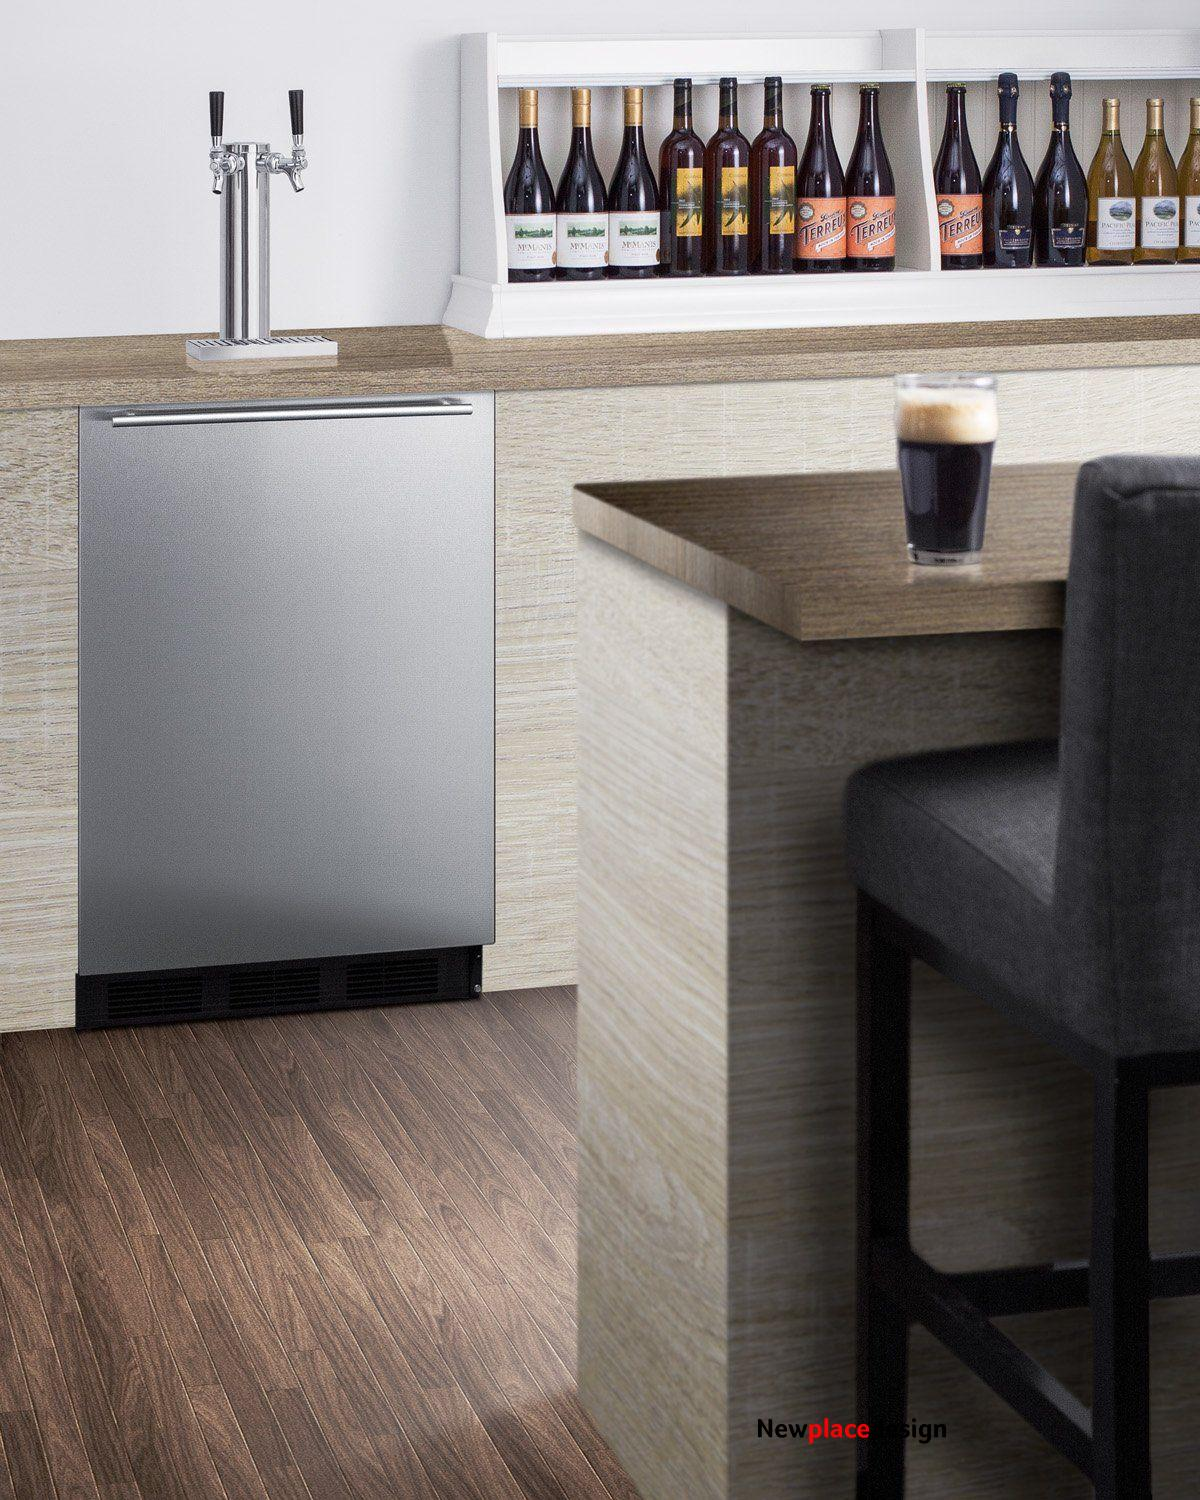 Summit Built-in undercounter kegerator with stainless steel wrapped door and black cabinet ADA height commercially listed dual tap beer dispenser SBC58BBIADA